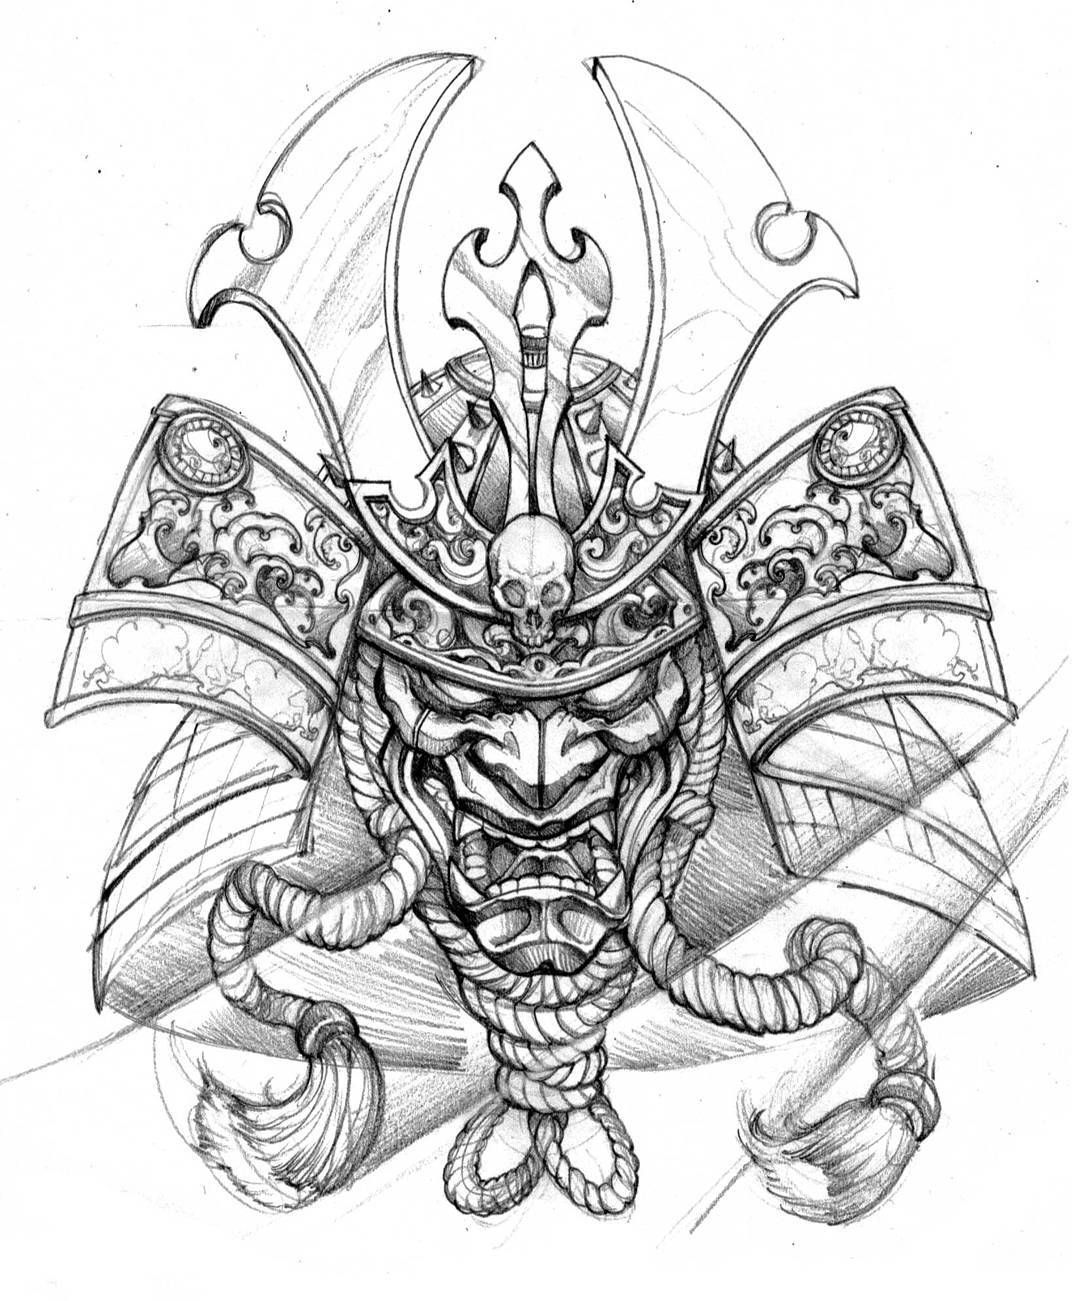 Top Free Oni Irezumi Backgrounds: Helmet Design Outline For Print